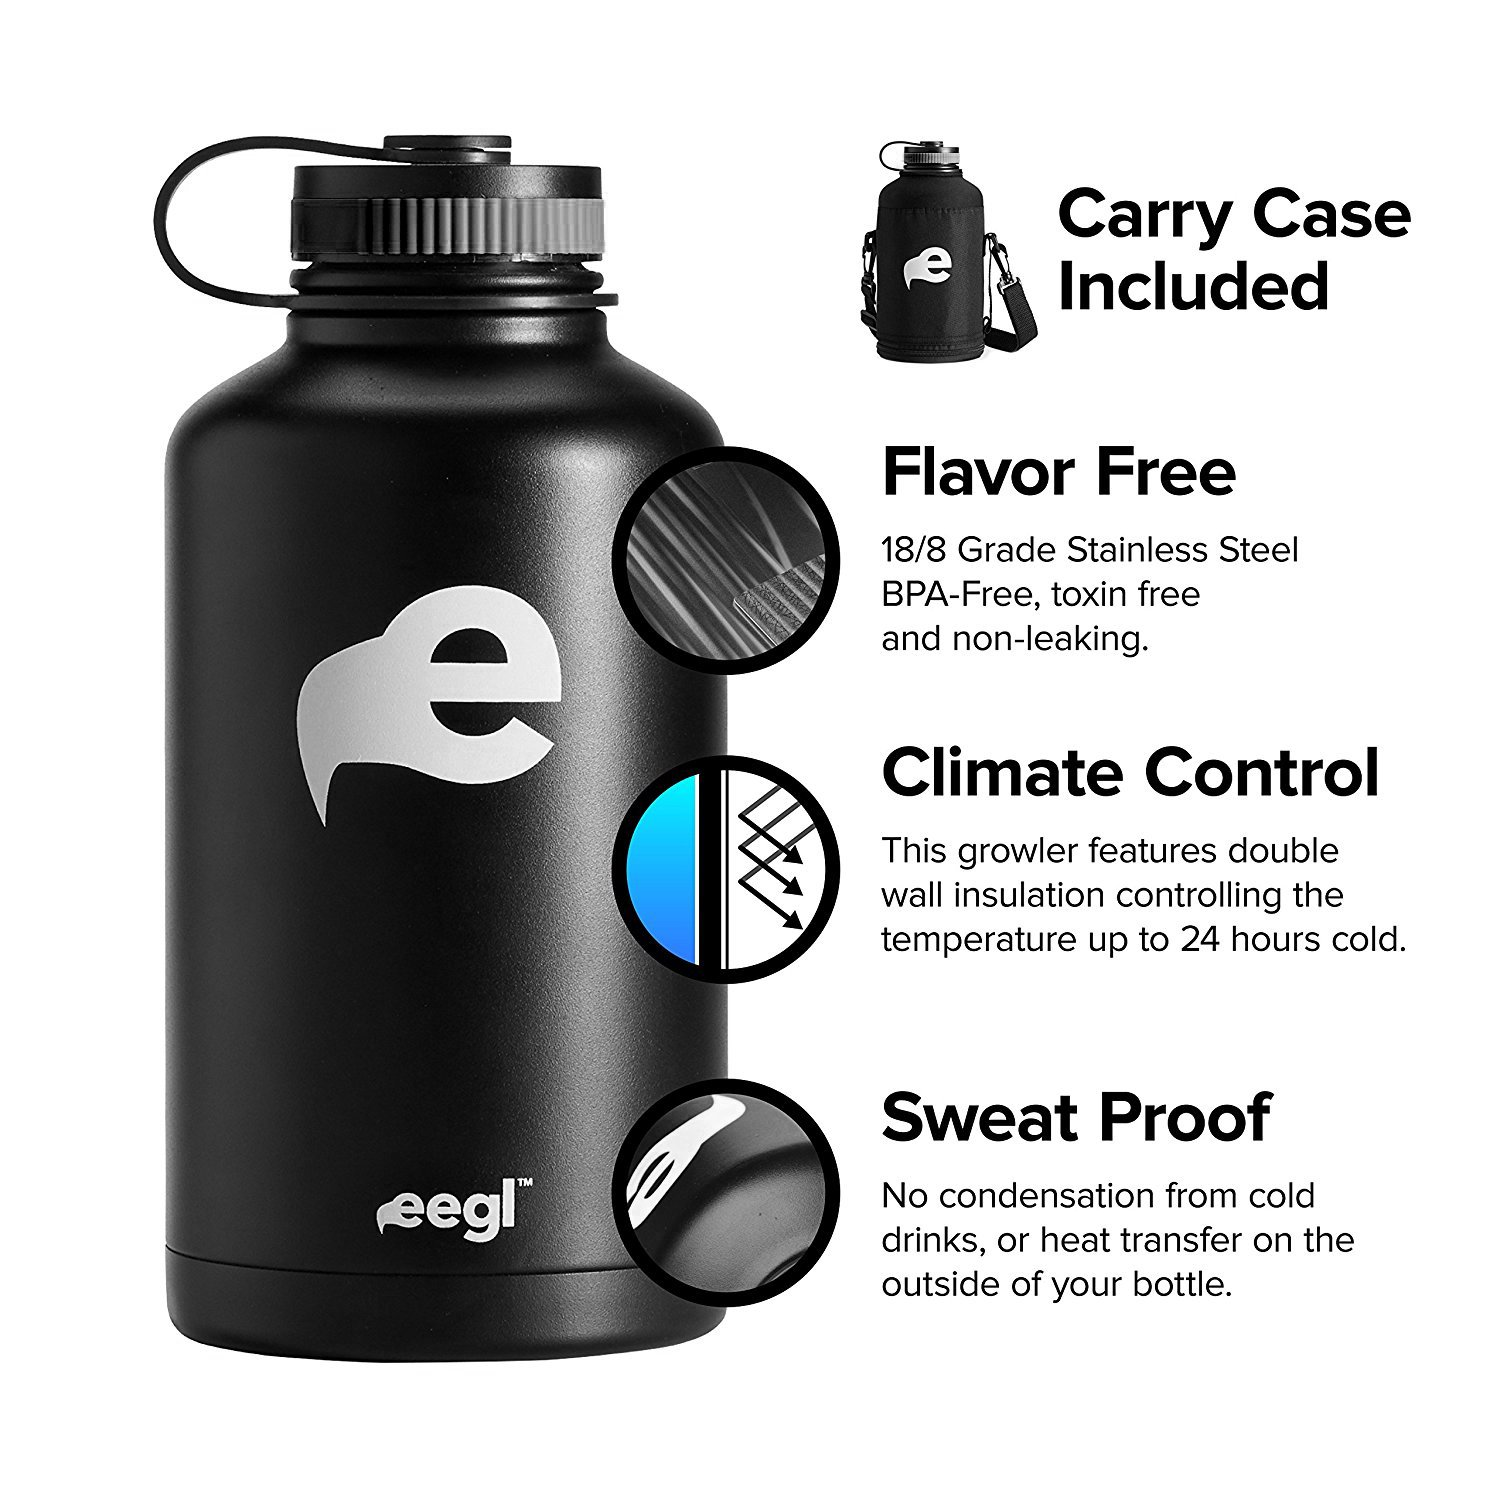 Stainless Steel Insulated Beer Growler - 64 oz Water Bottle - Includes Carry Case - Double Wall Vacuum Sealed Wide Mouth Design. Five Year Guarantee! Perfect Temperature Control from eegl by eegl (Image #5)